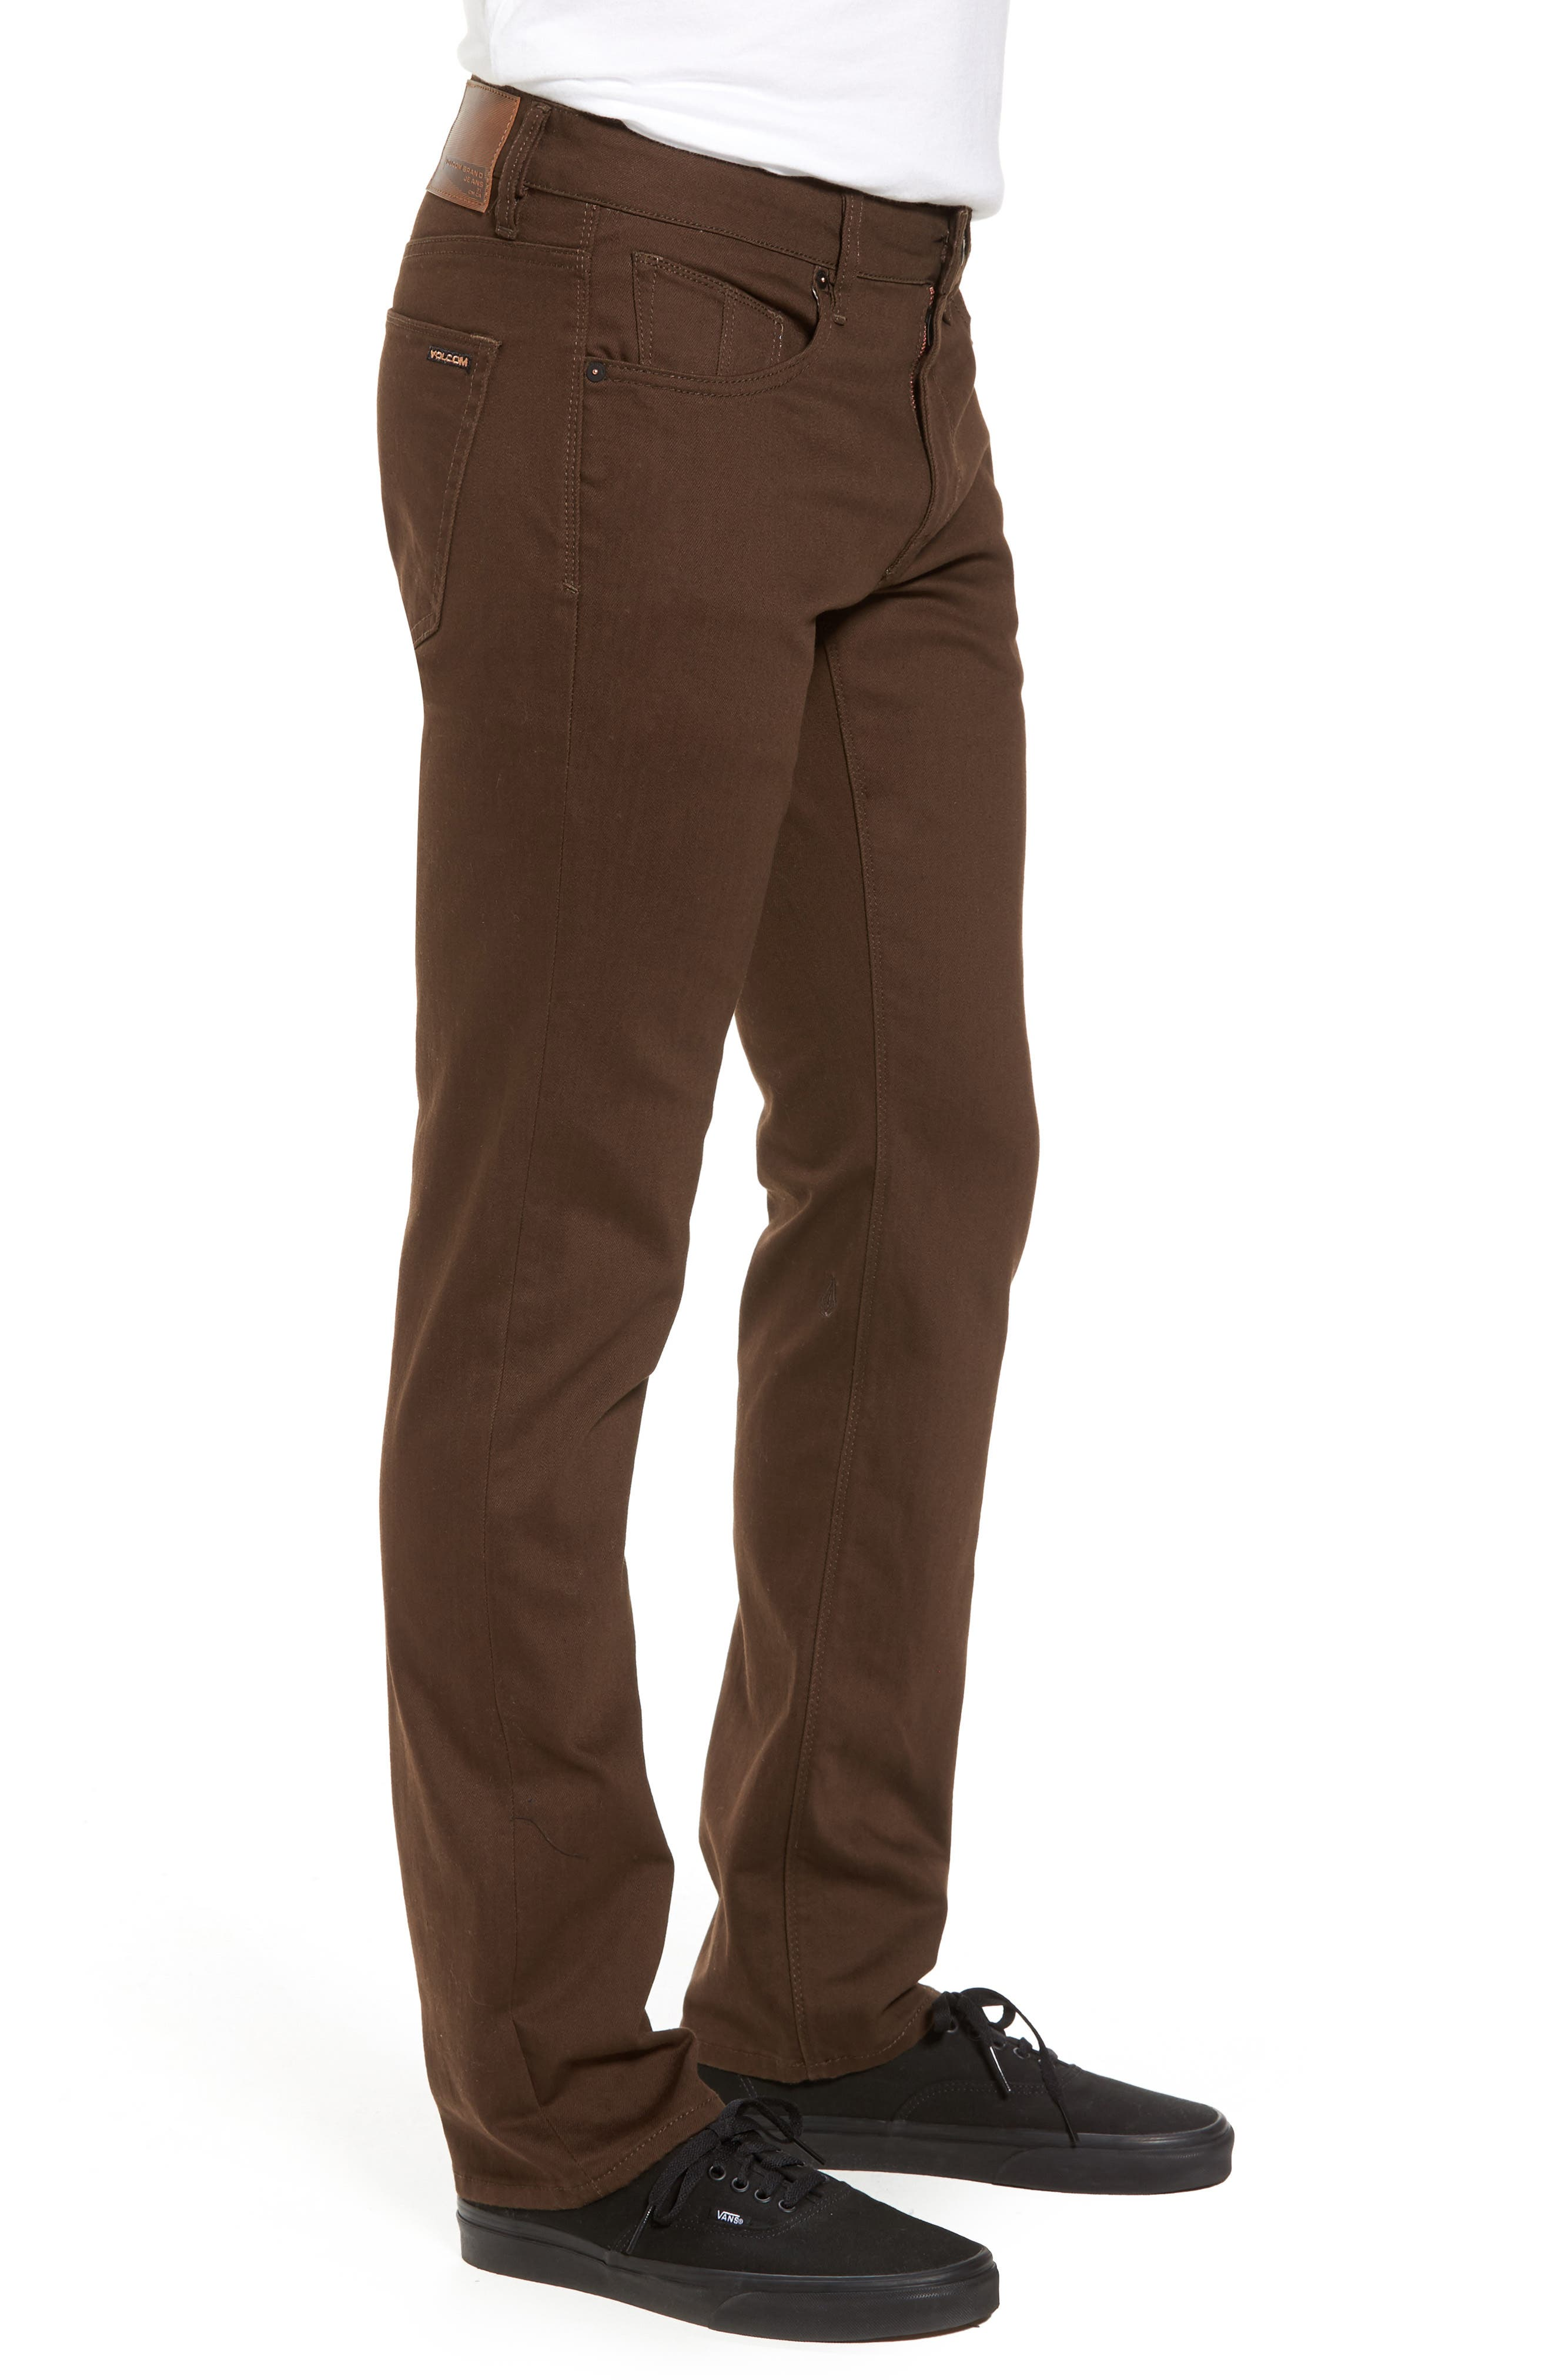 Vorta Slub Pants,                             Alternate thumbnail 7, color,